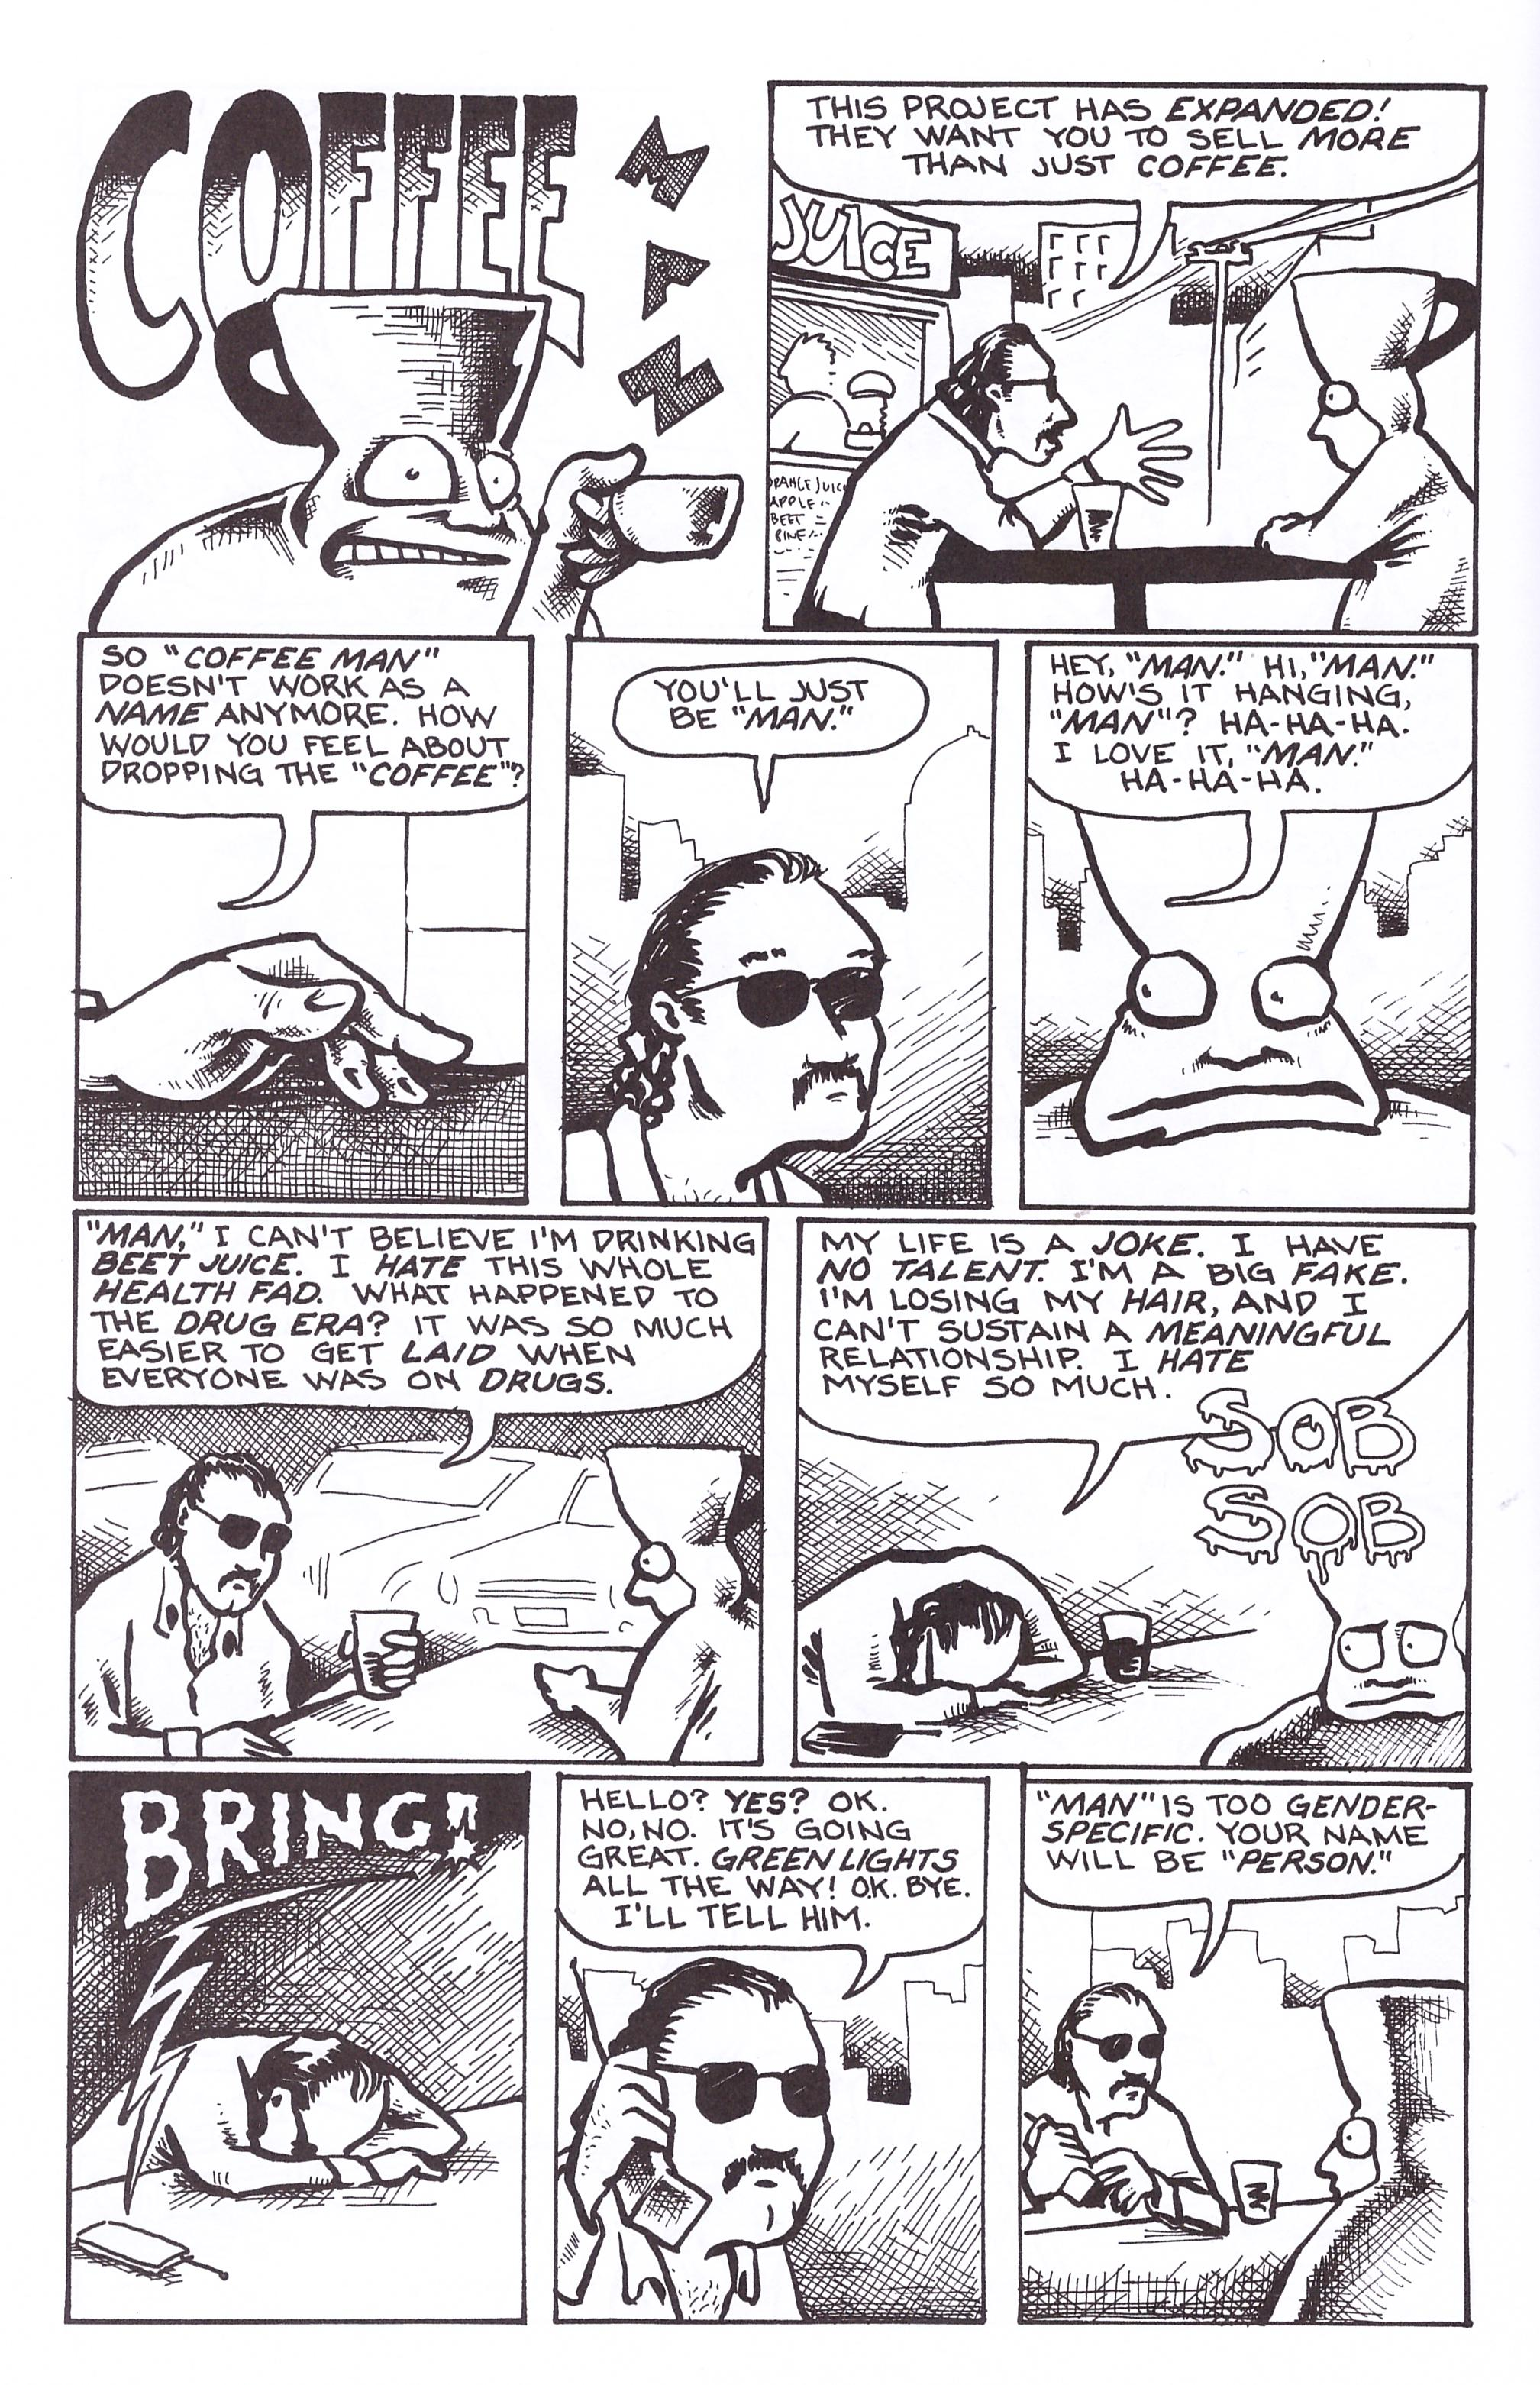 Too Much Coffee Man Omnibus review